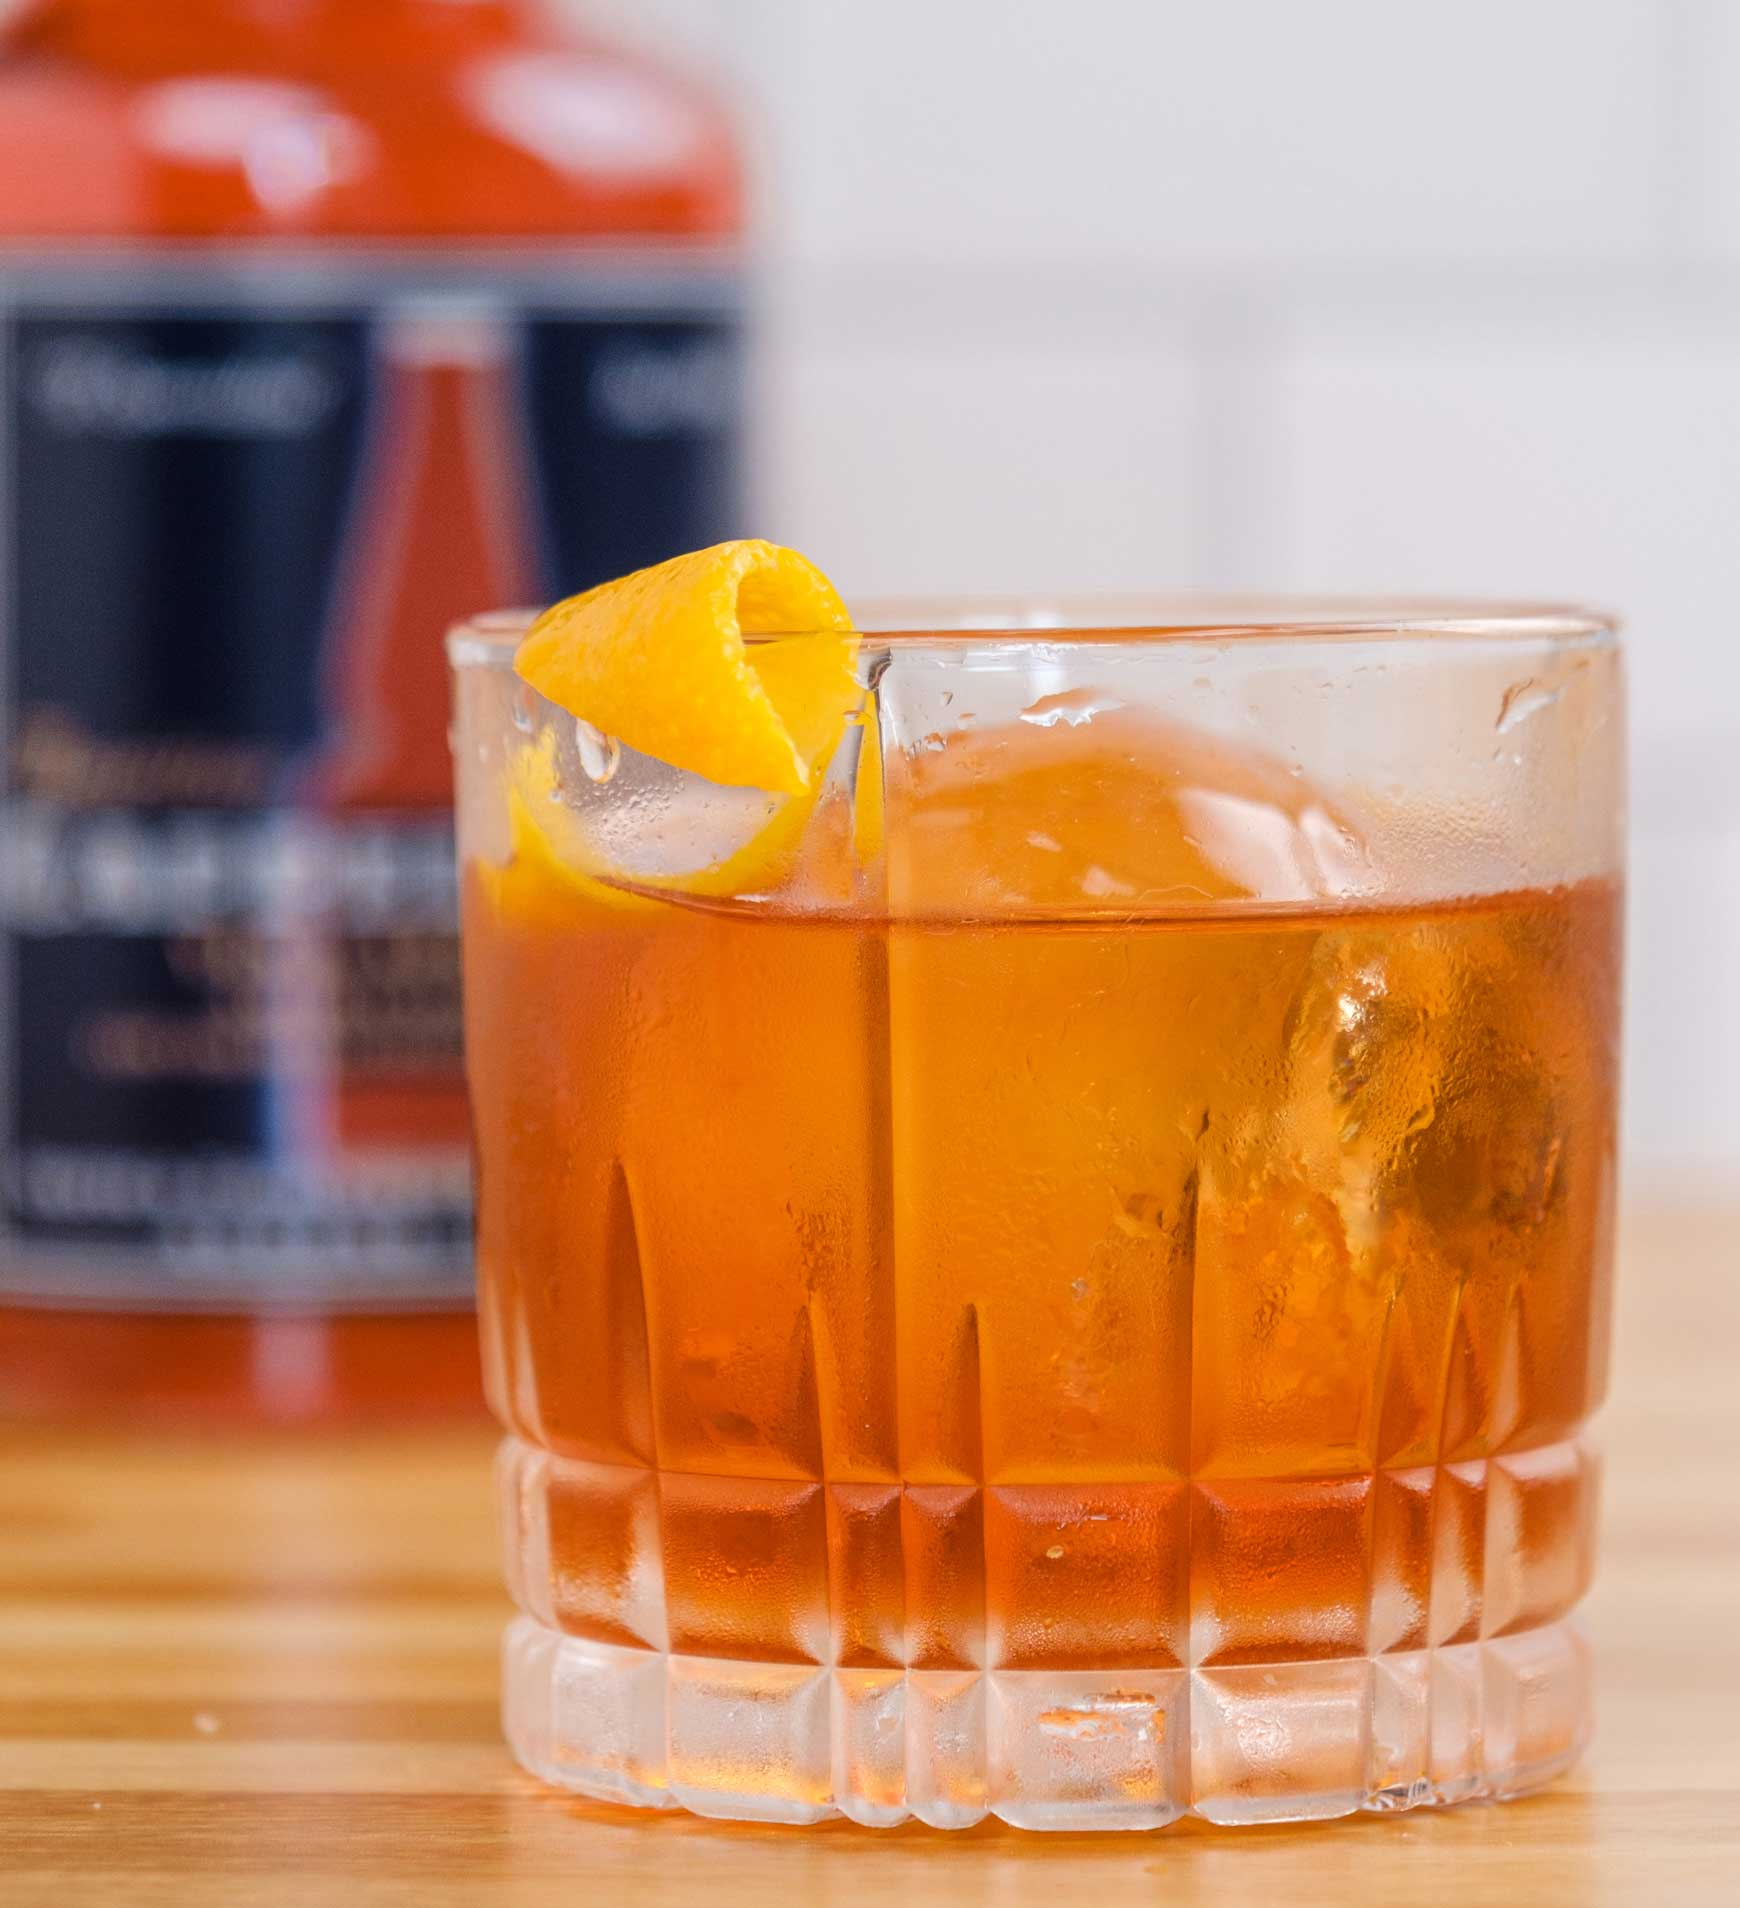 An example of the Boulevardier, the mixed drink (cocktail) featuring bourbon whiskey or rye whiskey, Aperitivo Cappelletti, and Dolin Rouge Vermouth de Chambéry; photo by Miranda Hodge